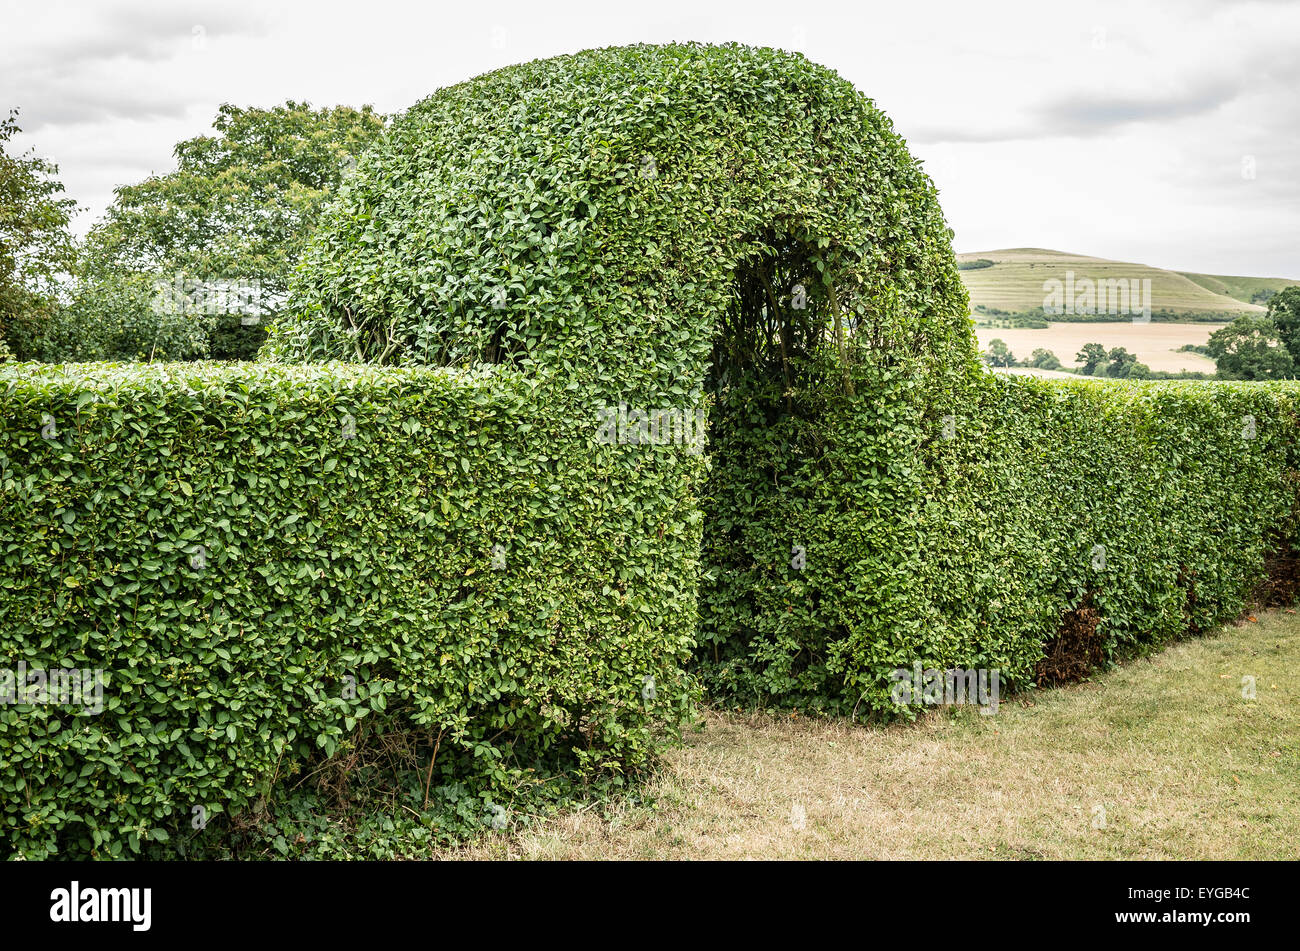 Newly trimmed privet hedge in summer - Stock Image